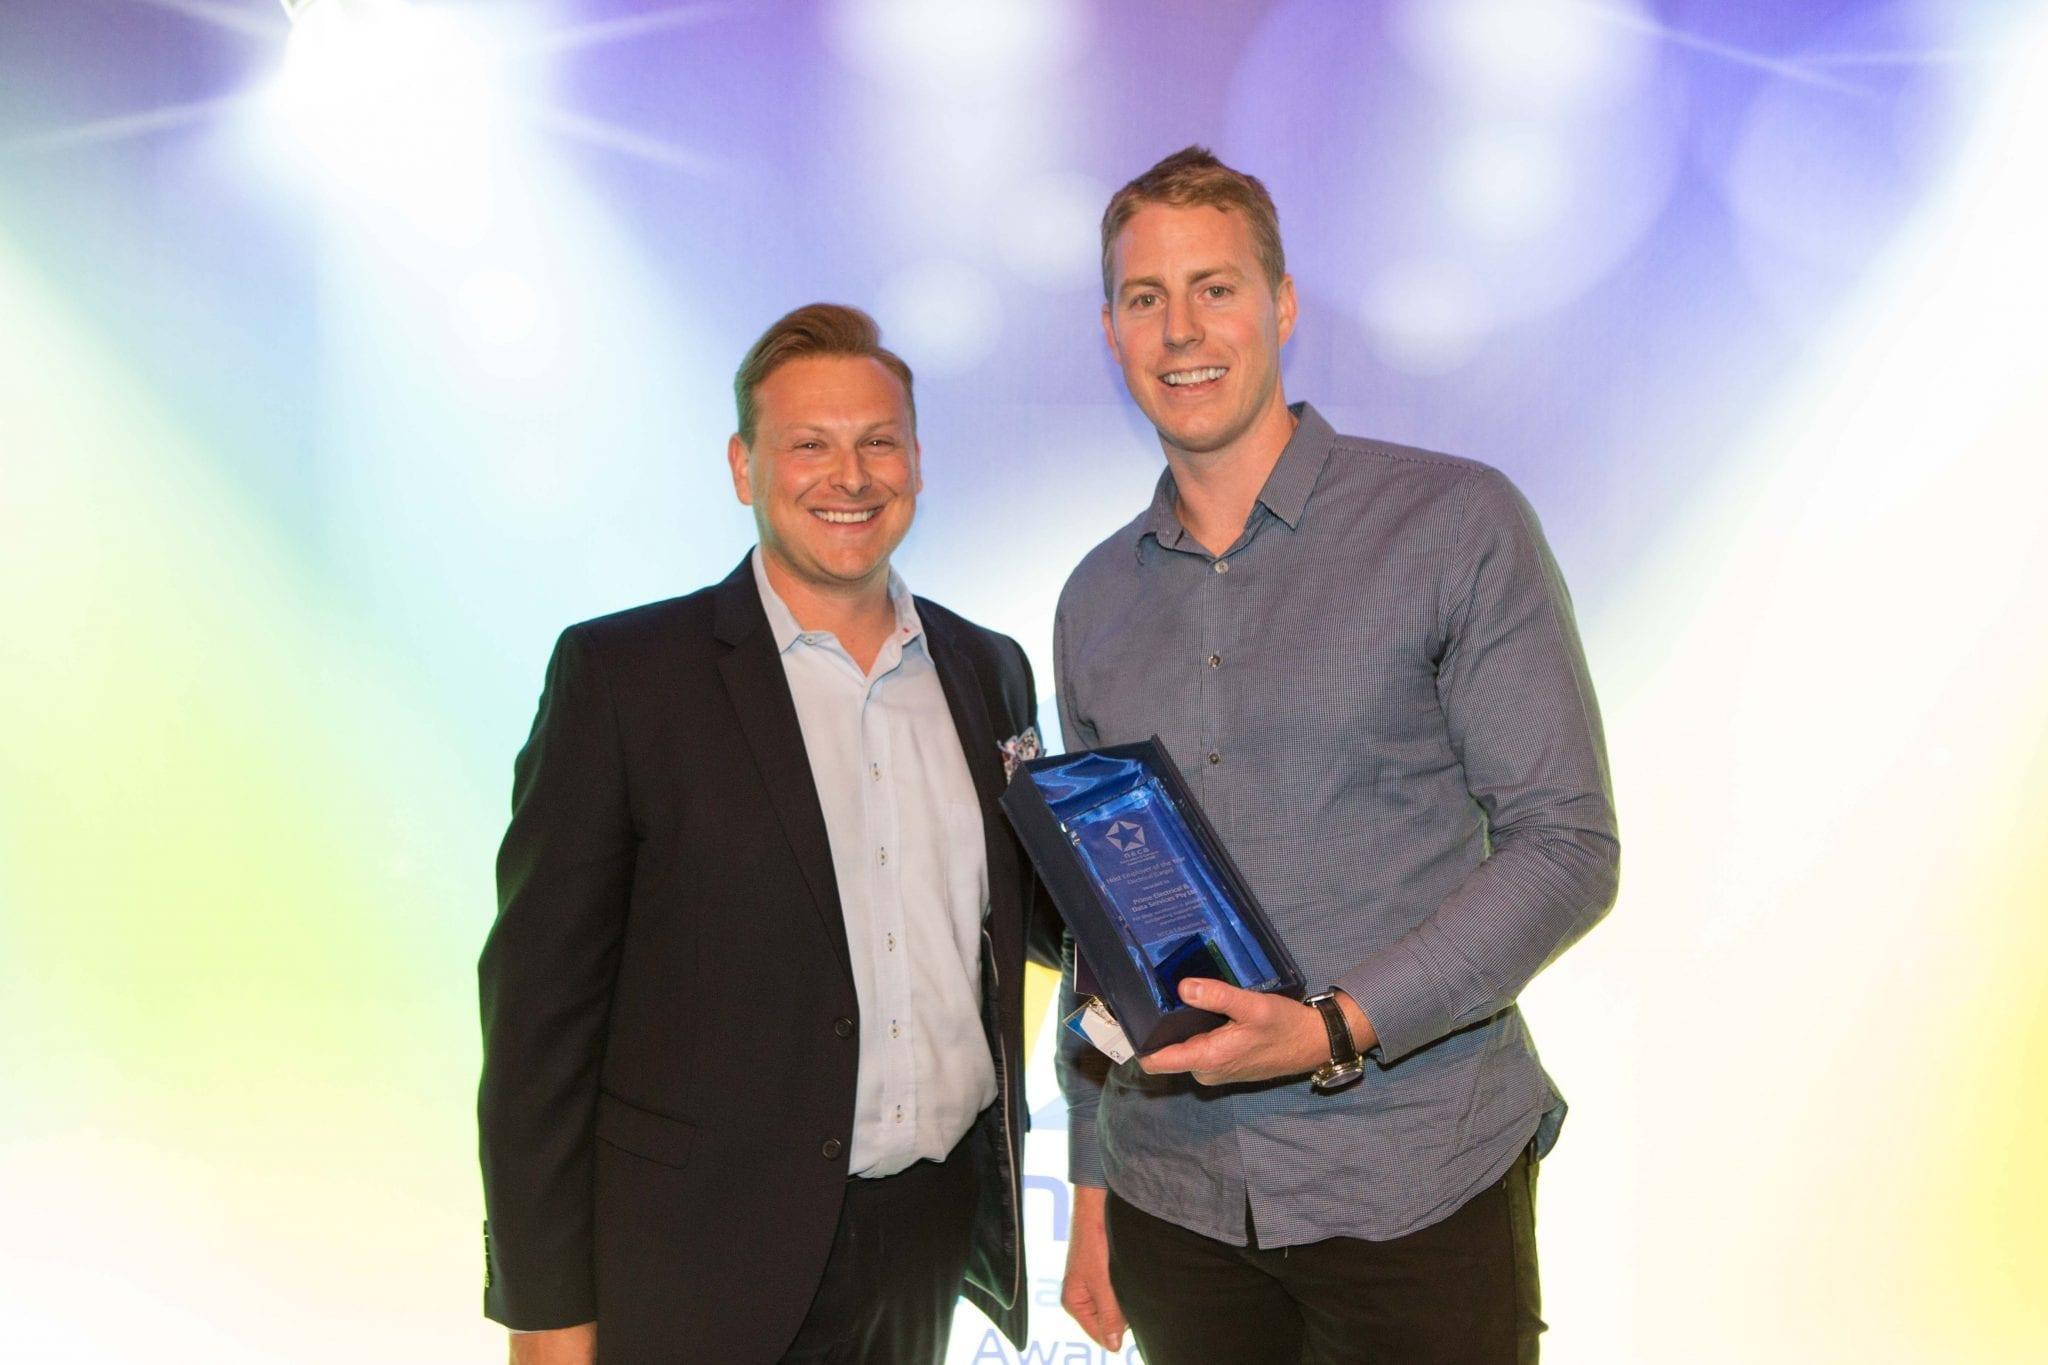 Daniel Tentser with David from Prime